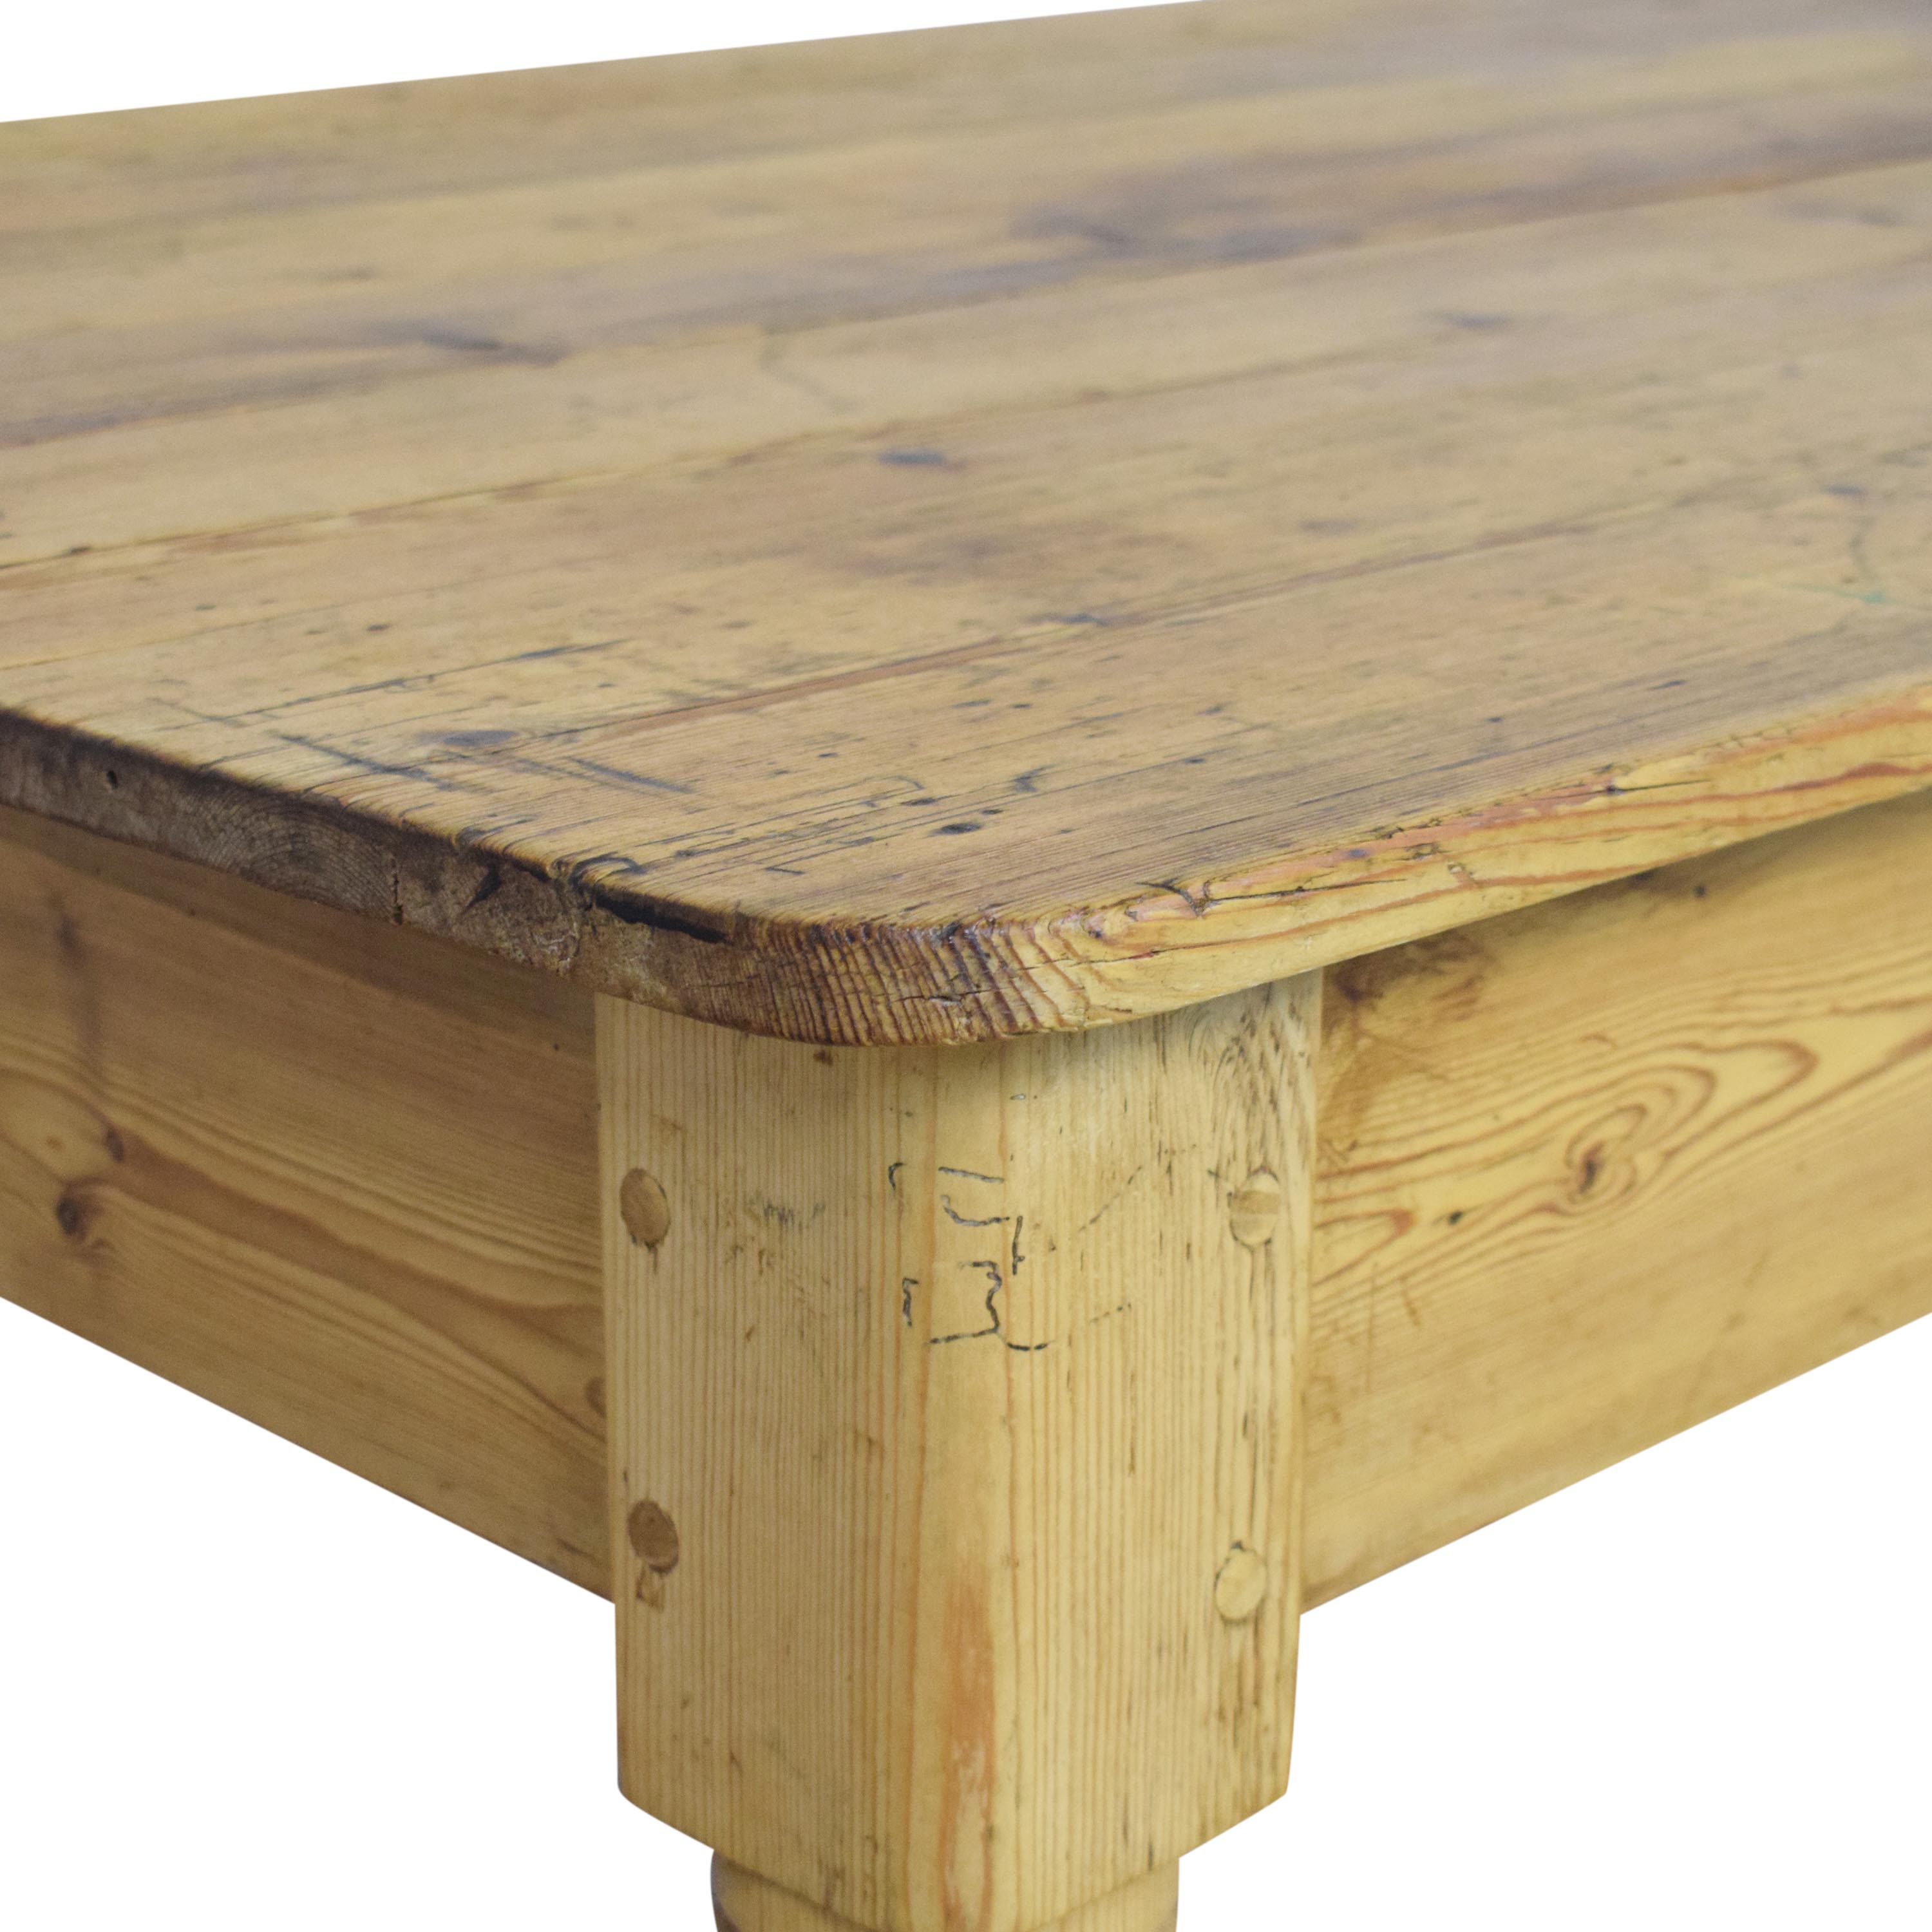 The Pine Mine Coffee Table second hand